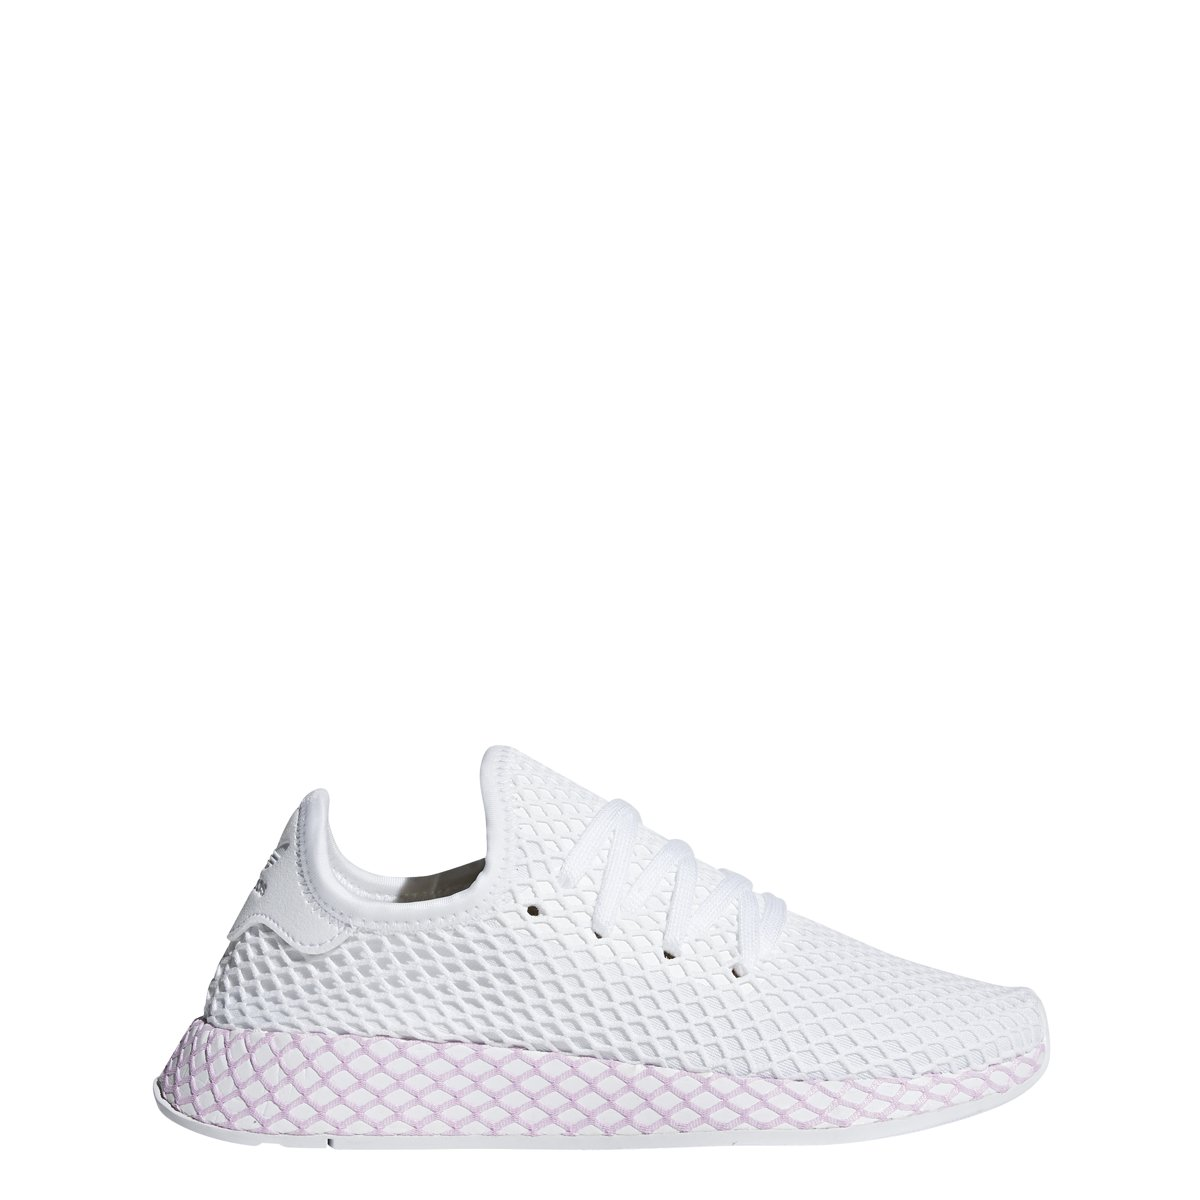 adidas Womens DEERUPT W White/Whie/Lilac - B37601 (7.5)